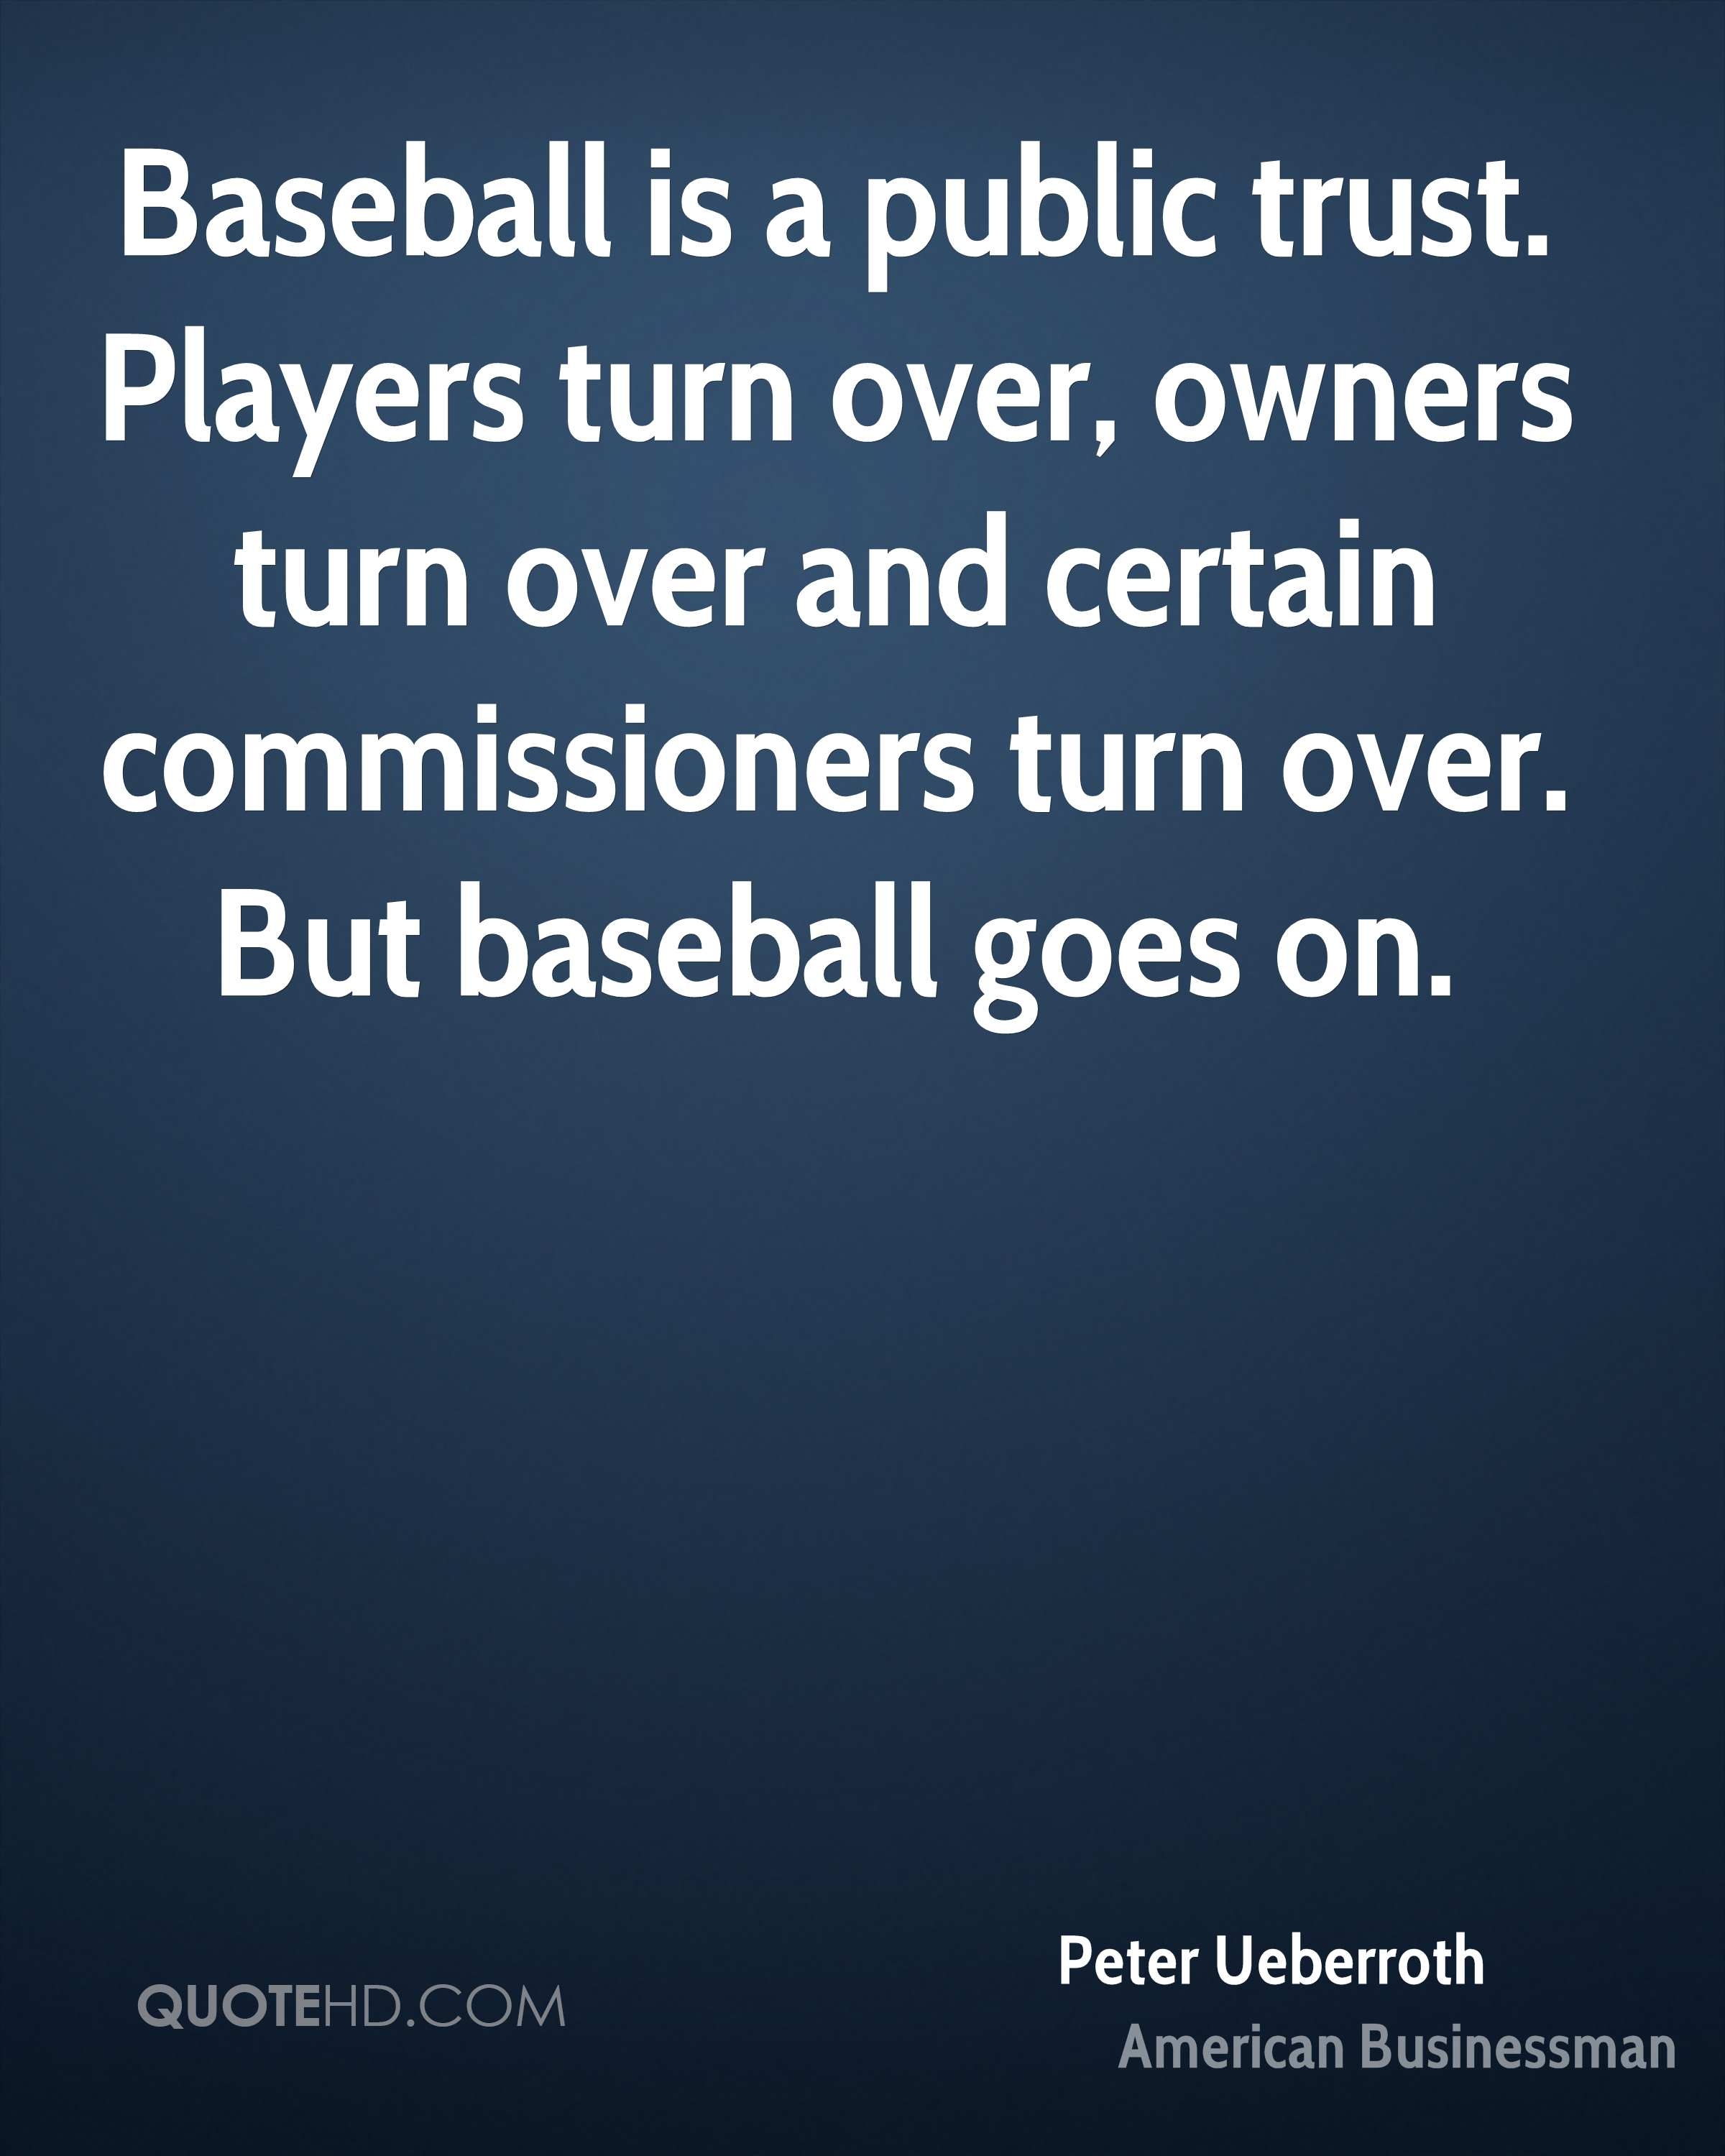 Baseball is a public trust. Players turn over, owners turn over and certain commissioners turn over. But baseball goes on.